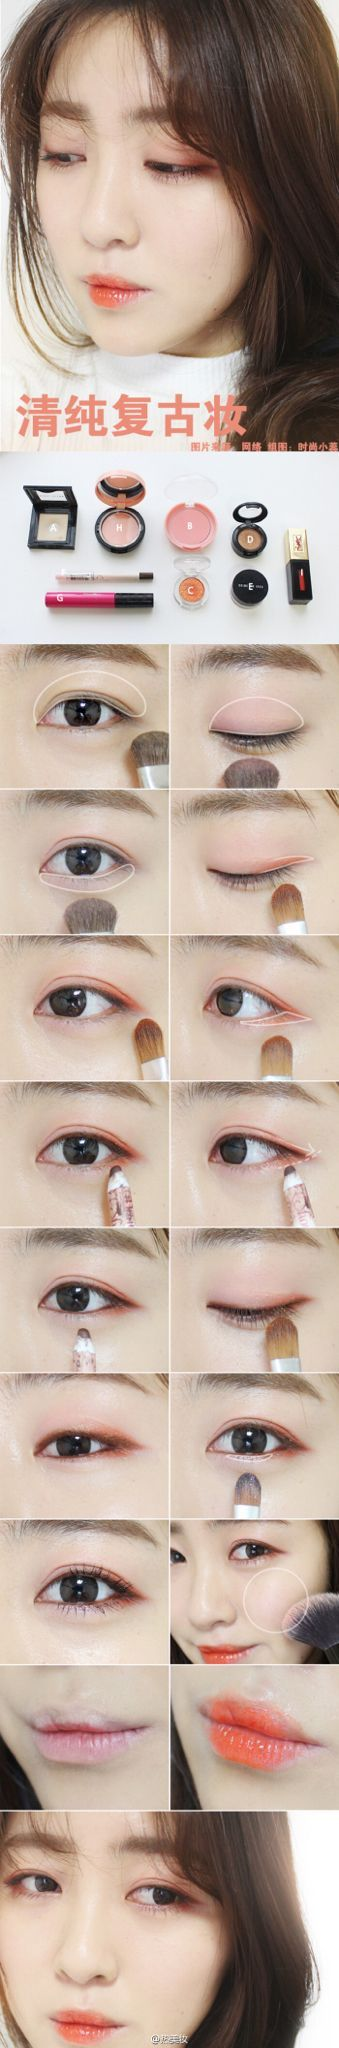 Gorgeous Korean coral eye makeup tutorial #style #shopping #styles #outfit #pretty #girl #girls #beauty #beautiful #me #cute #stylish #photooftheday #swag #dress #shoes #diy #design #fashion #Makeup